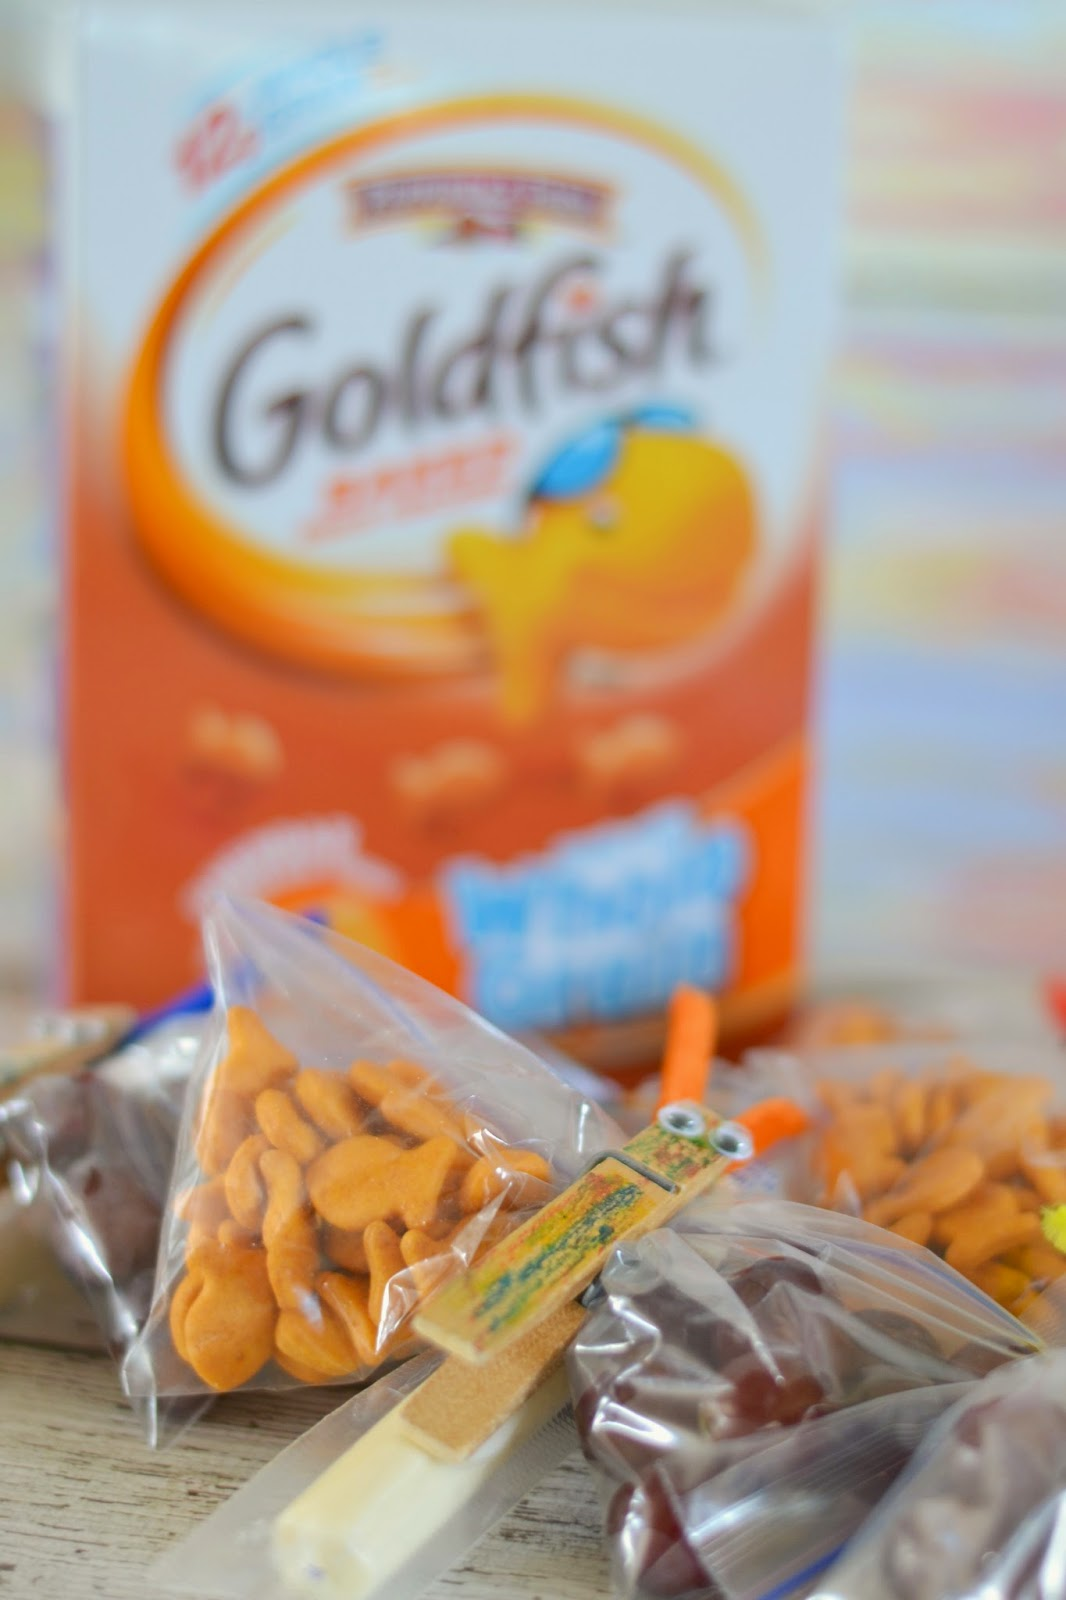 Goldfish crackers, snacking, Walmart, Recipes with Goldfish crackers, Goldfish snacks, Goldfish Butterfly Snack Bags, Goldfish snack bags.